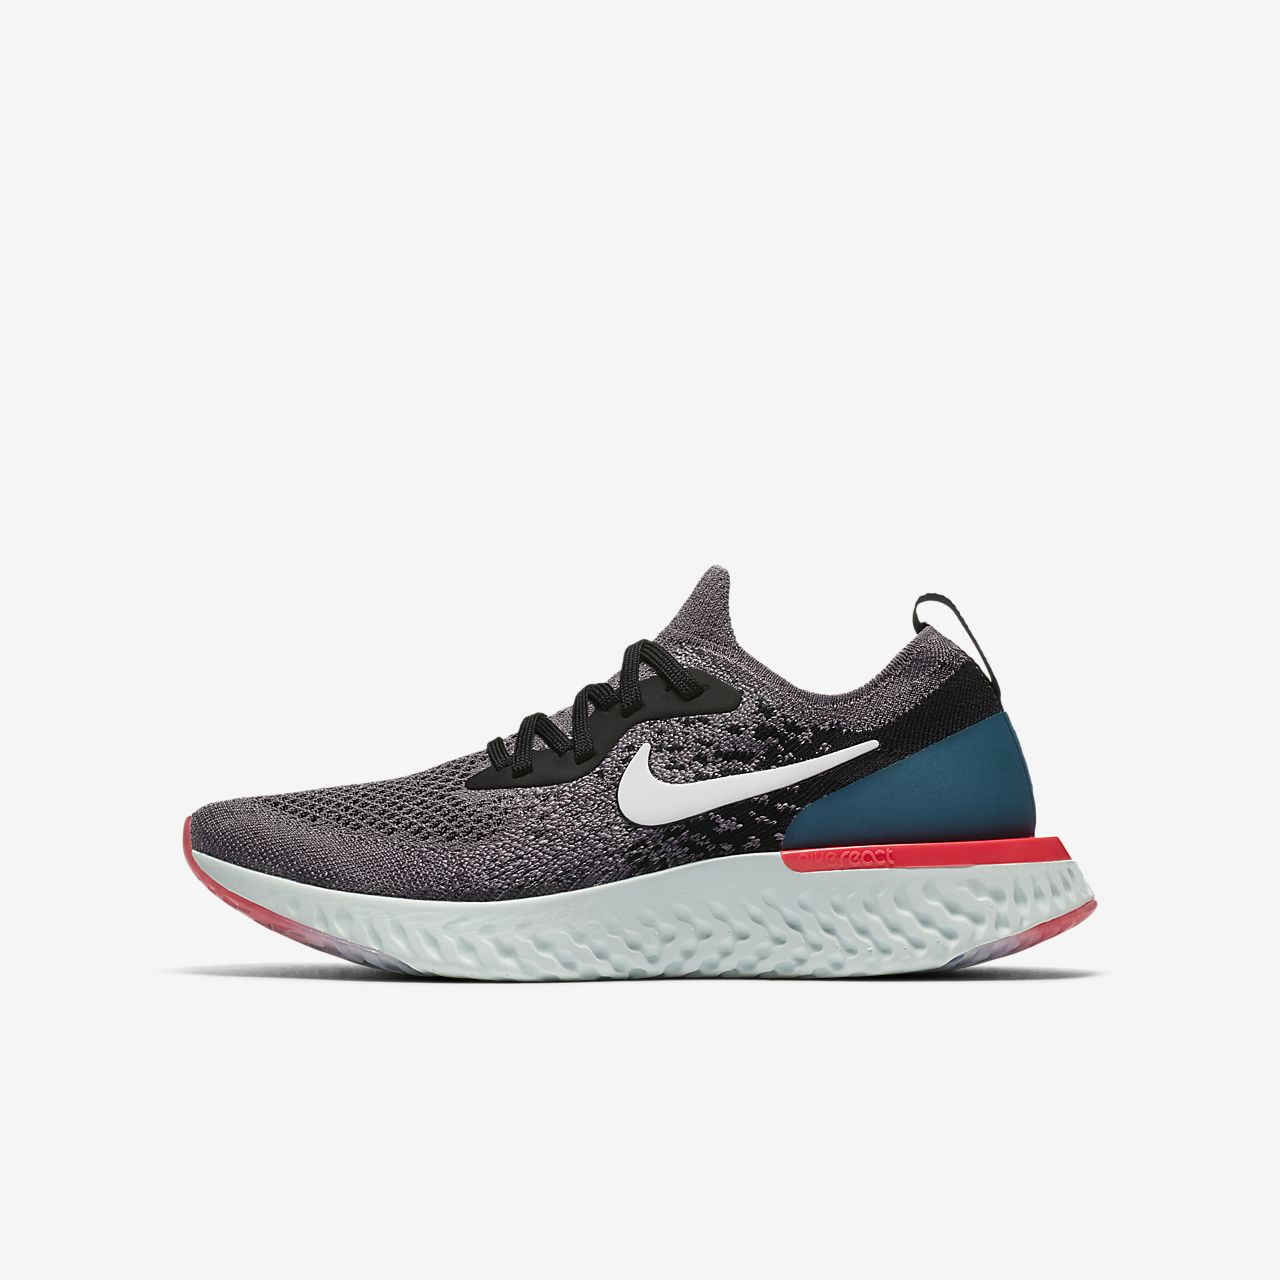 new products 6b2c1 25b27 Older Kids  Running Shoe. Nike Epic React Flyknit 1